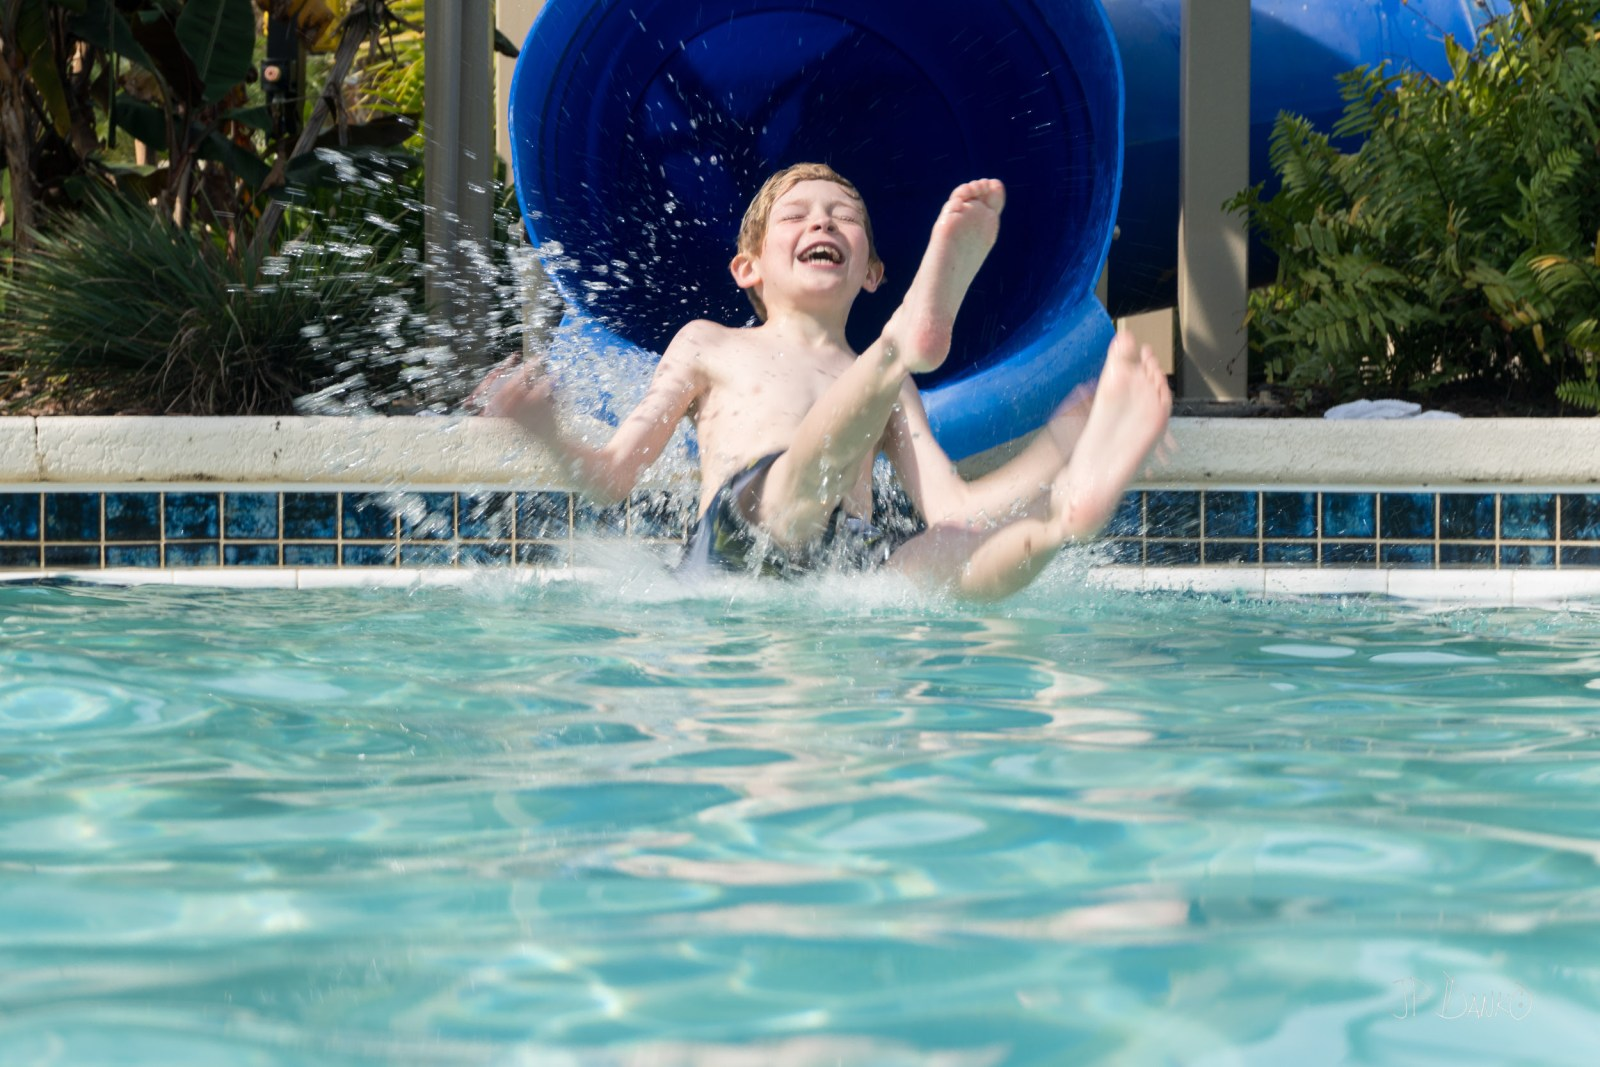 Boy laughs on water slide into cool blue holiday swimming pool